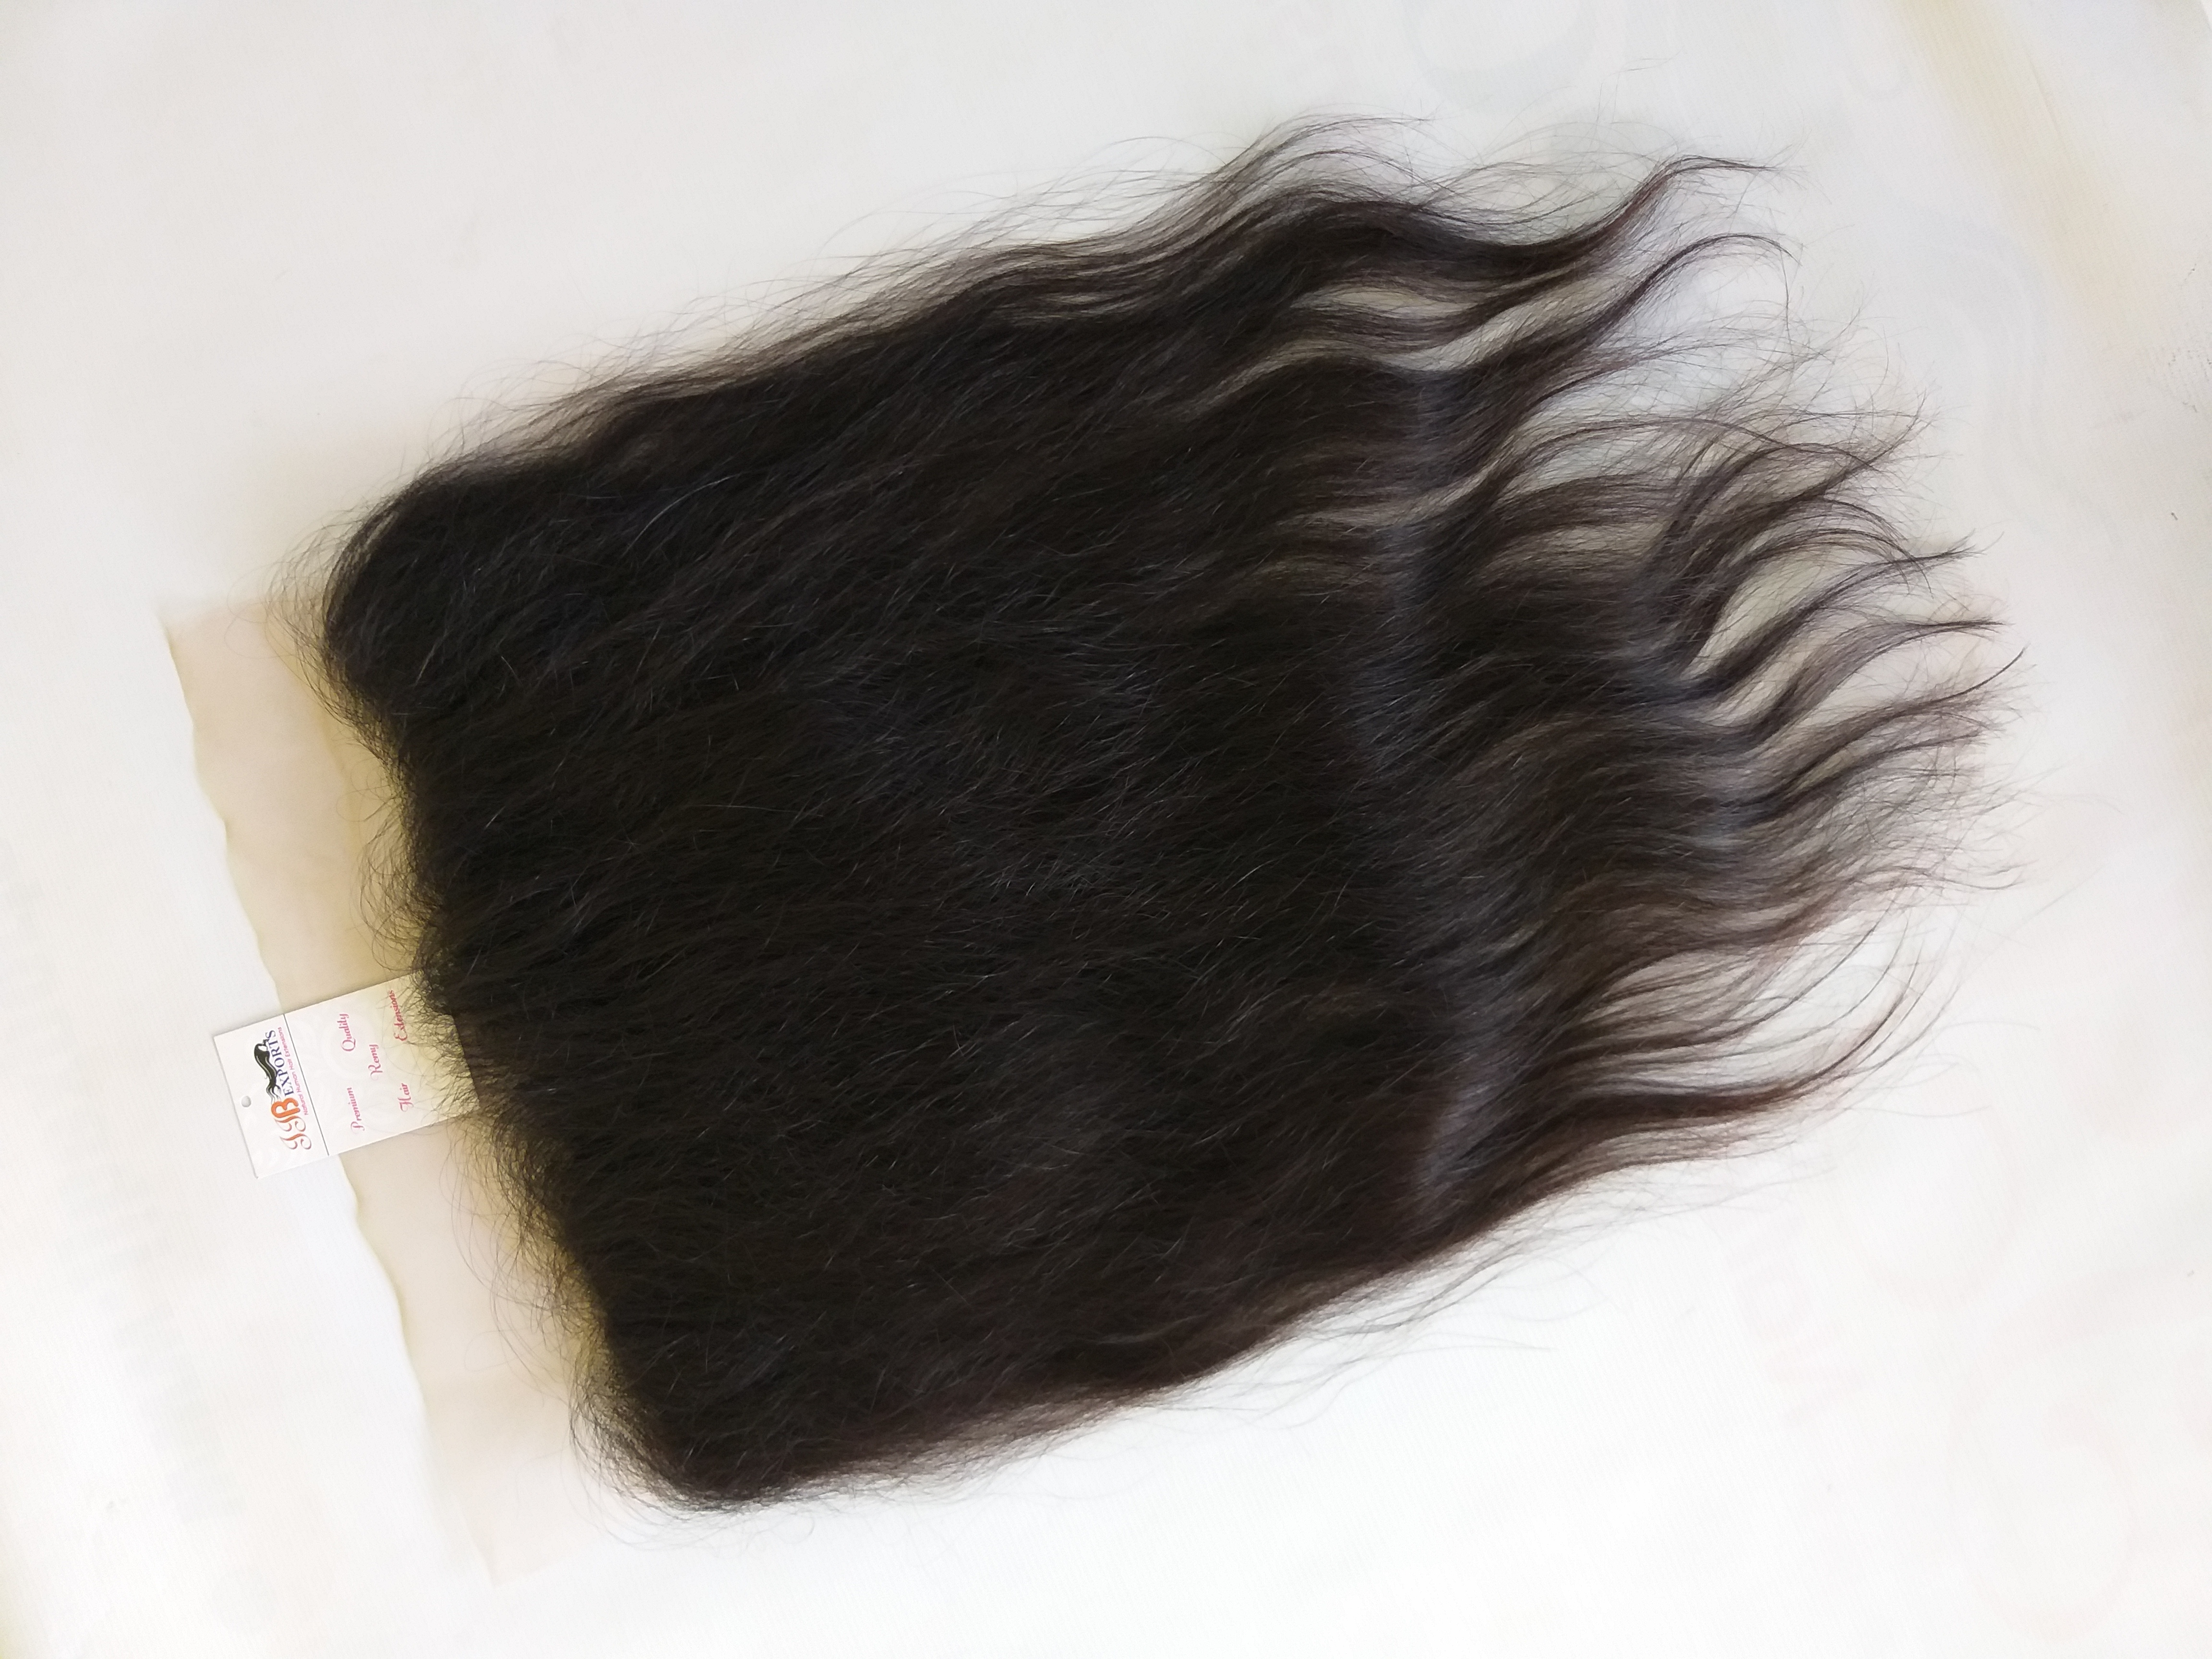 Indian Human Mink Curly/straight/wavy/body Wave Hair Weave Bundles Frontal Closure Swiss Transparent Full Lace Wigs